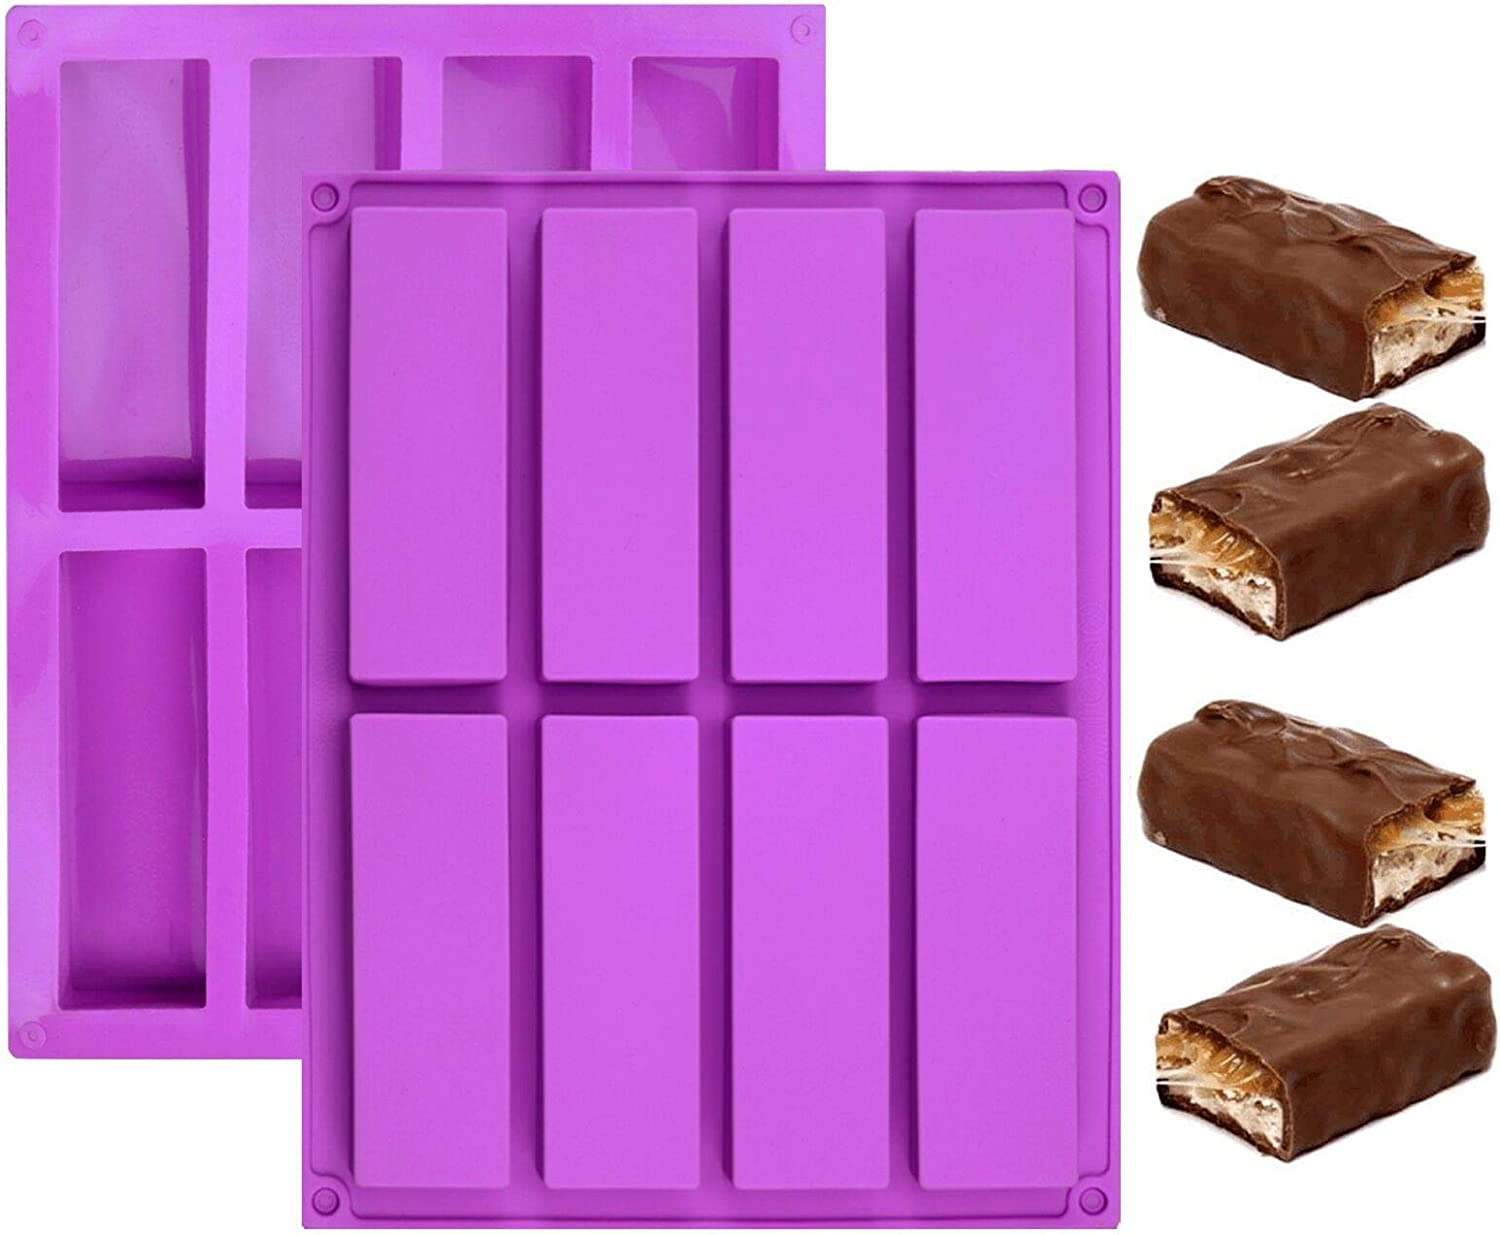 8 Cavity Rectangle Granola Bar Silicone Mold, 2 Pack Cereal Energy Bar Mold Butter Mold for Ganache, Chocolate Bar, Truffles, Cheesecake, Pudding